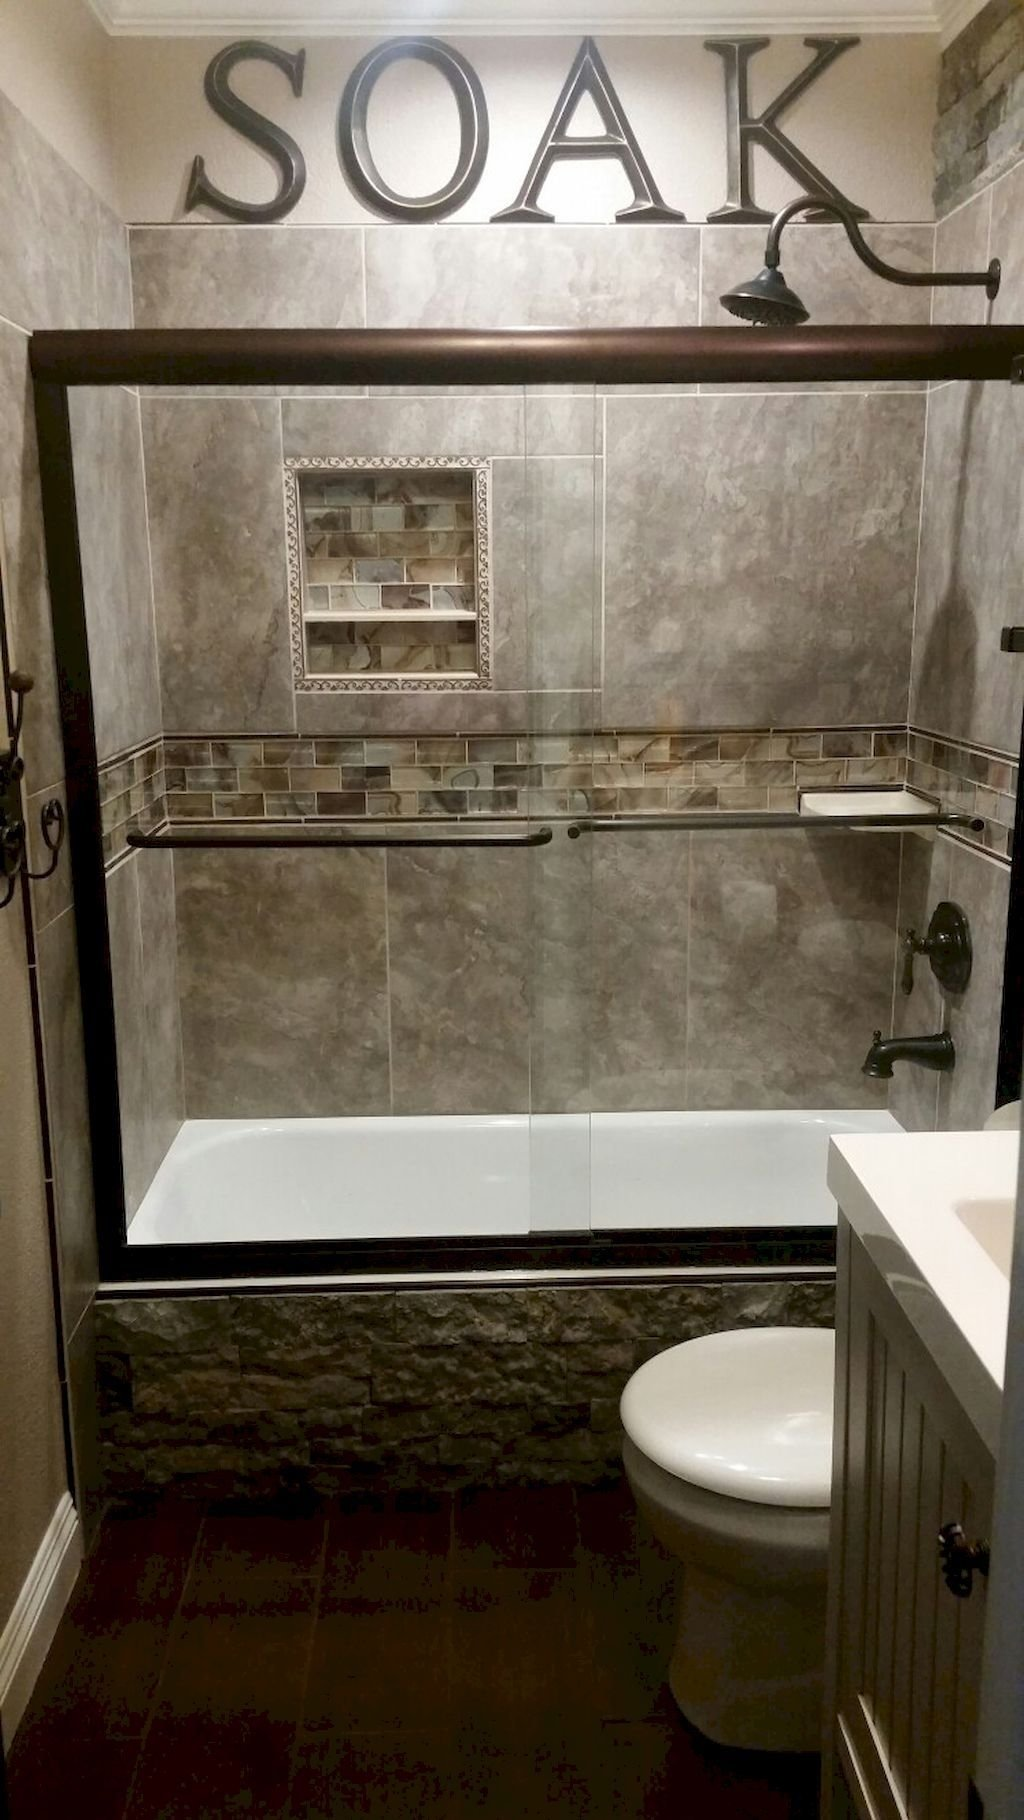 10 Fantastic Ideas For Remodeling A Small Bathroom 55 cool small master bathroom remodel ideas master bathrooms 2